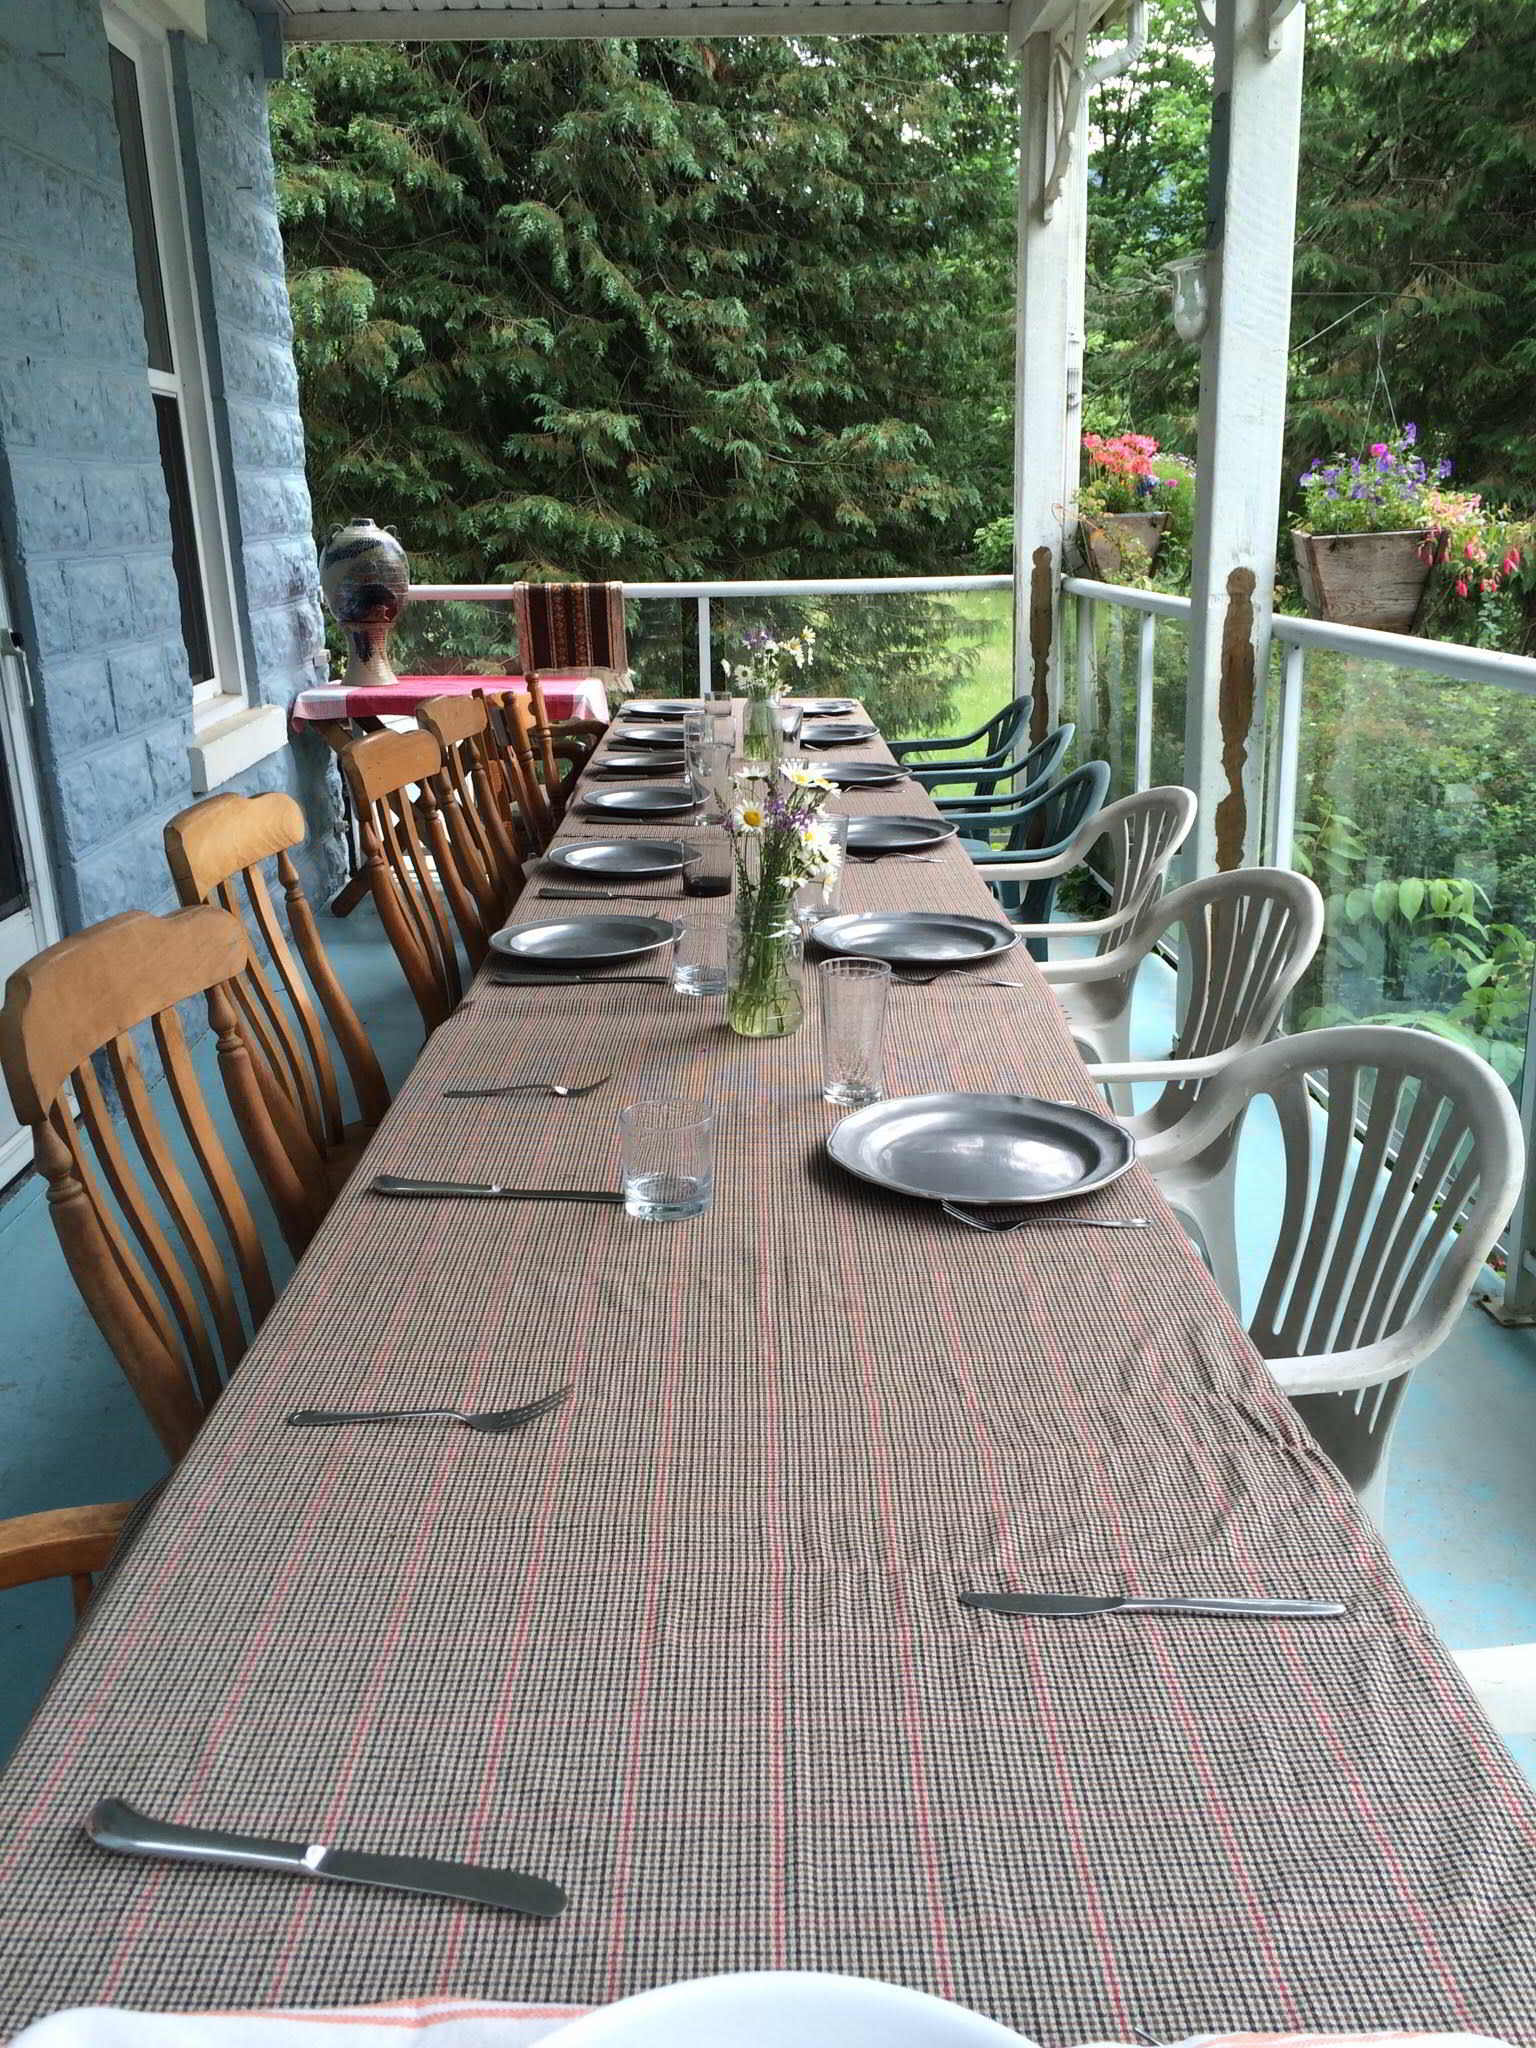 Earthwise Society Farm in Agassiz - Farm table dinner